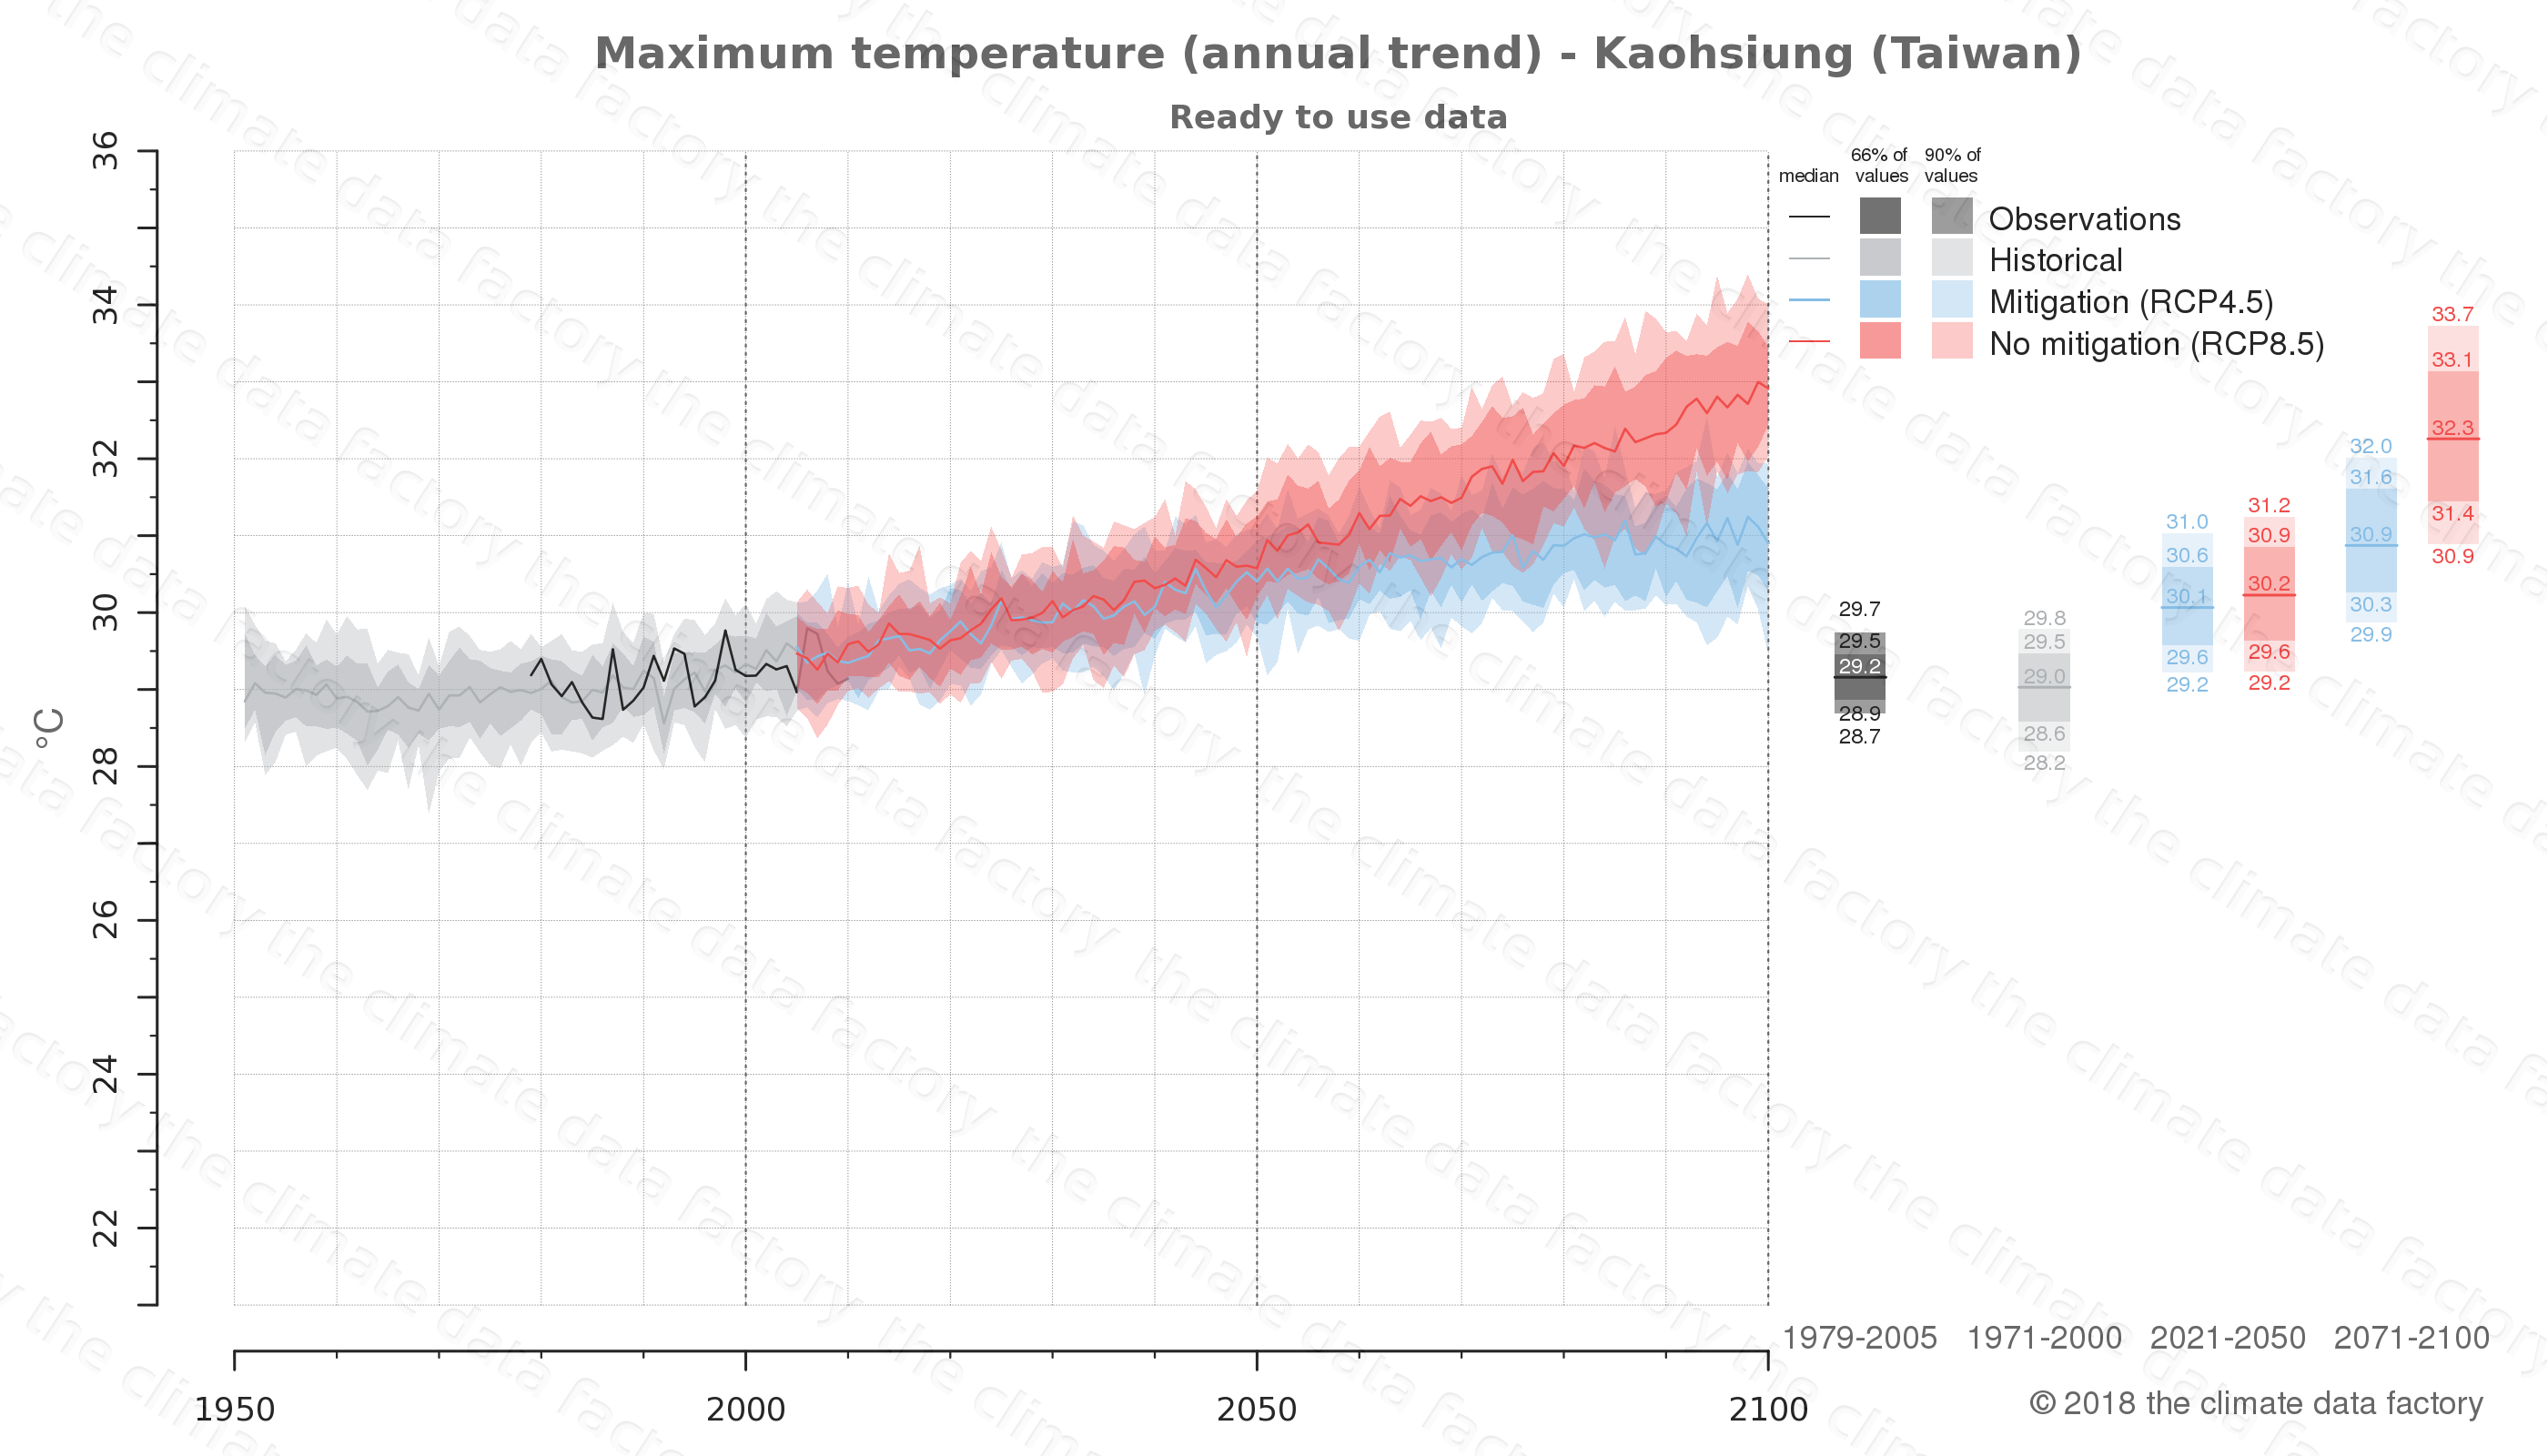 climate change data policy adaptation climate graph city data maximum-temperature kaohsiung taiwan